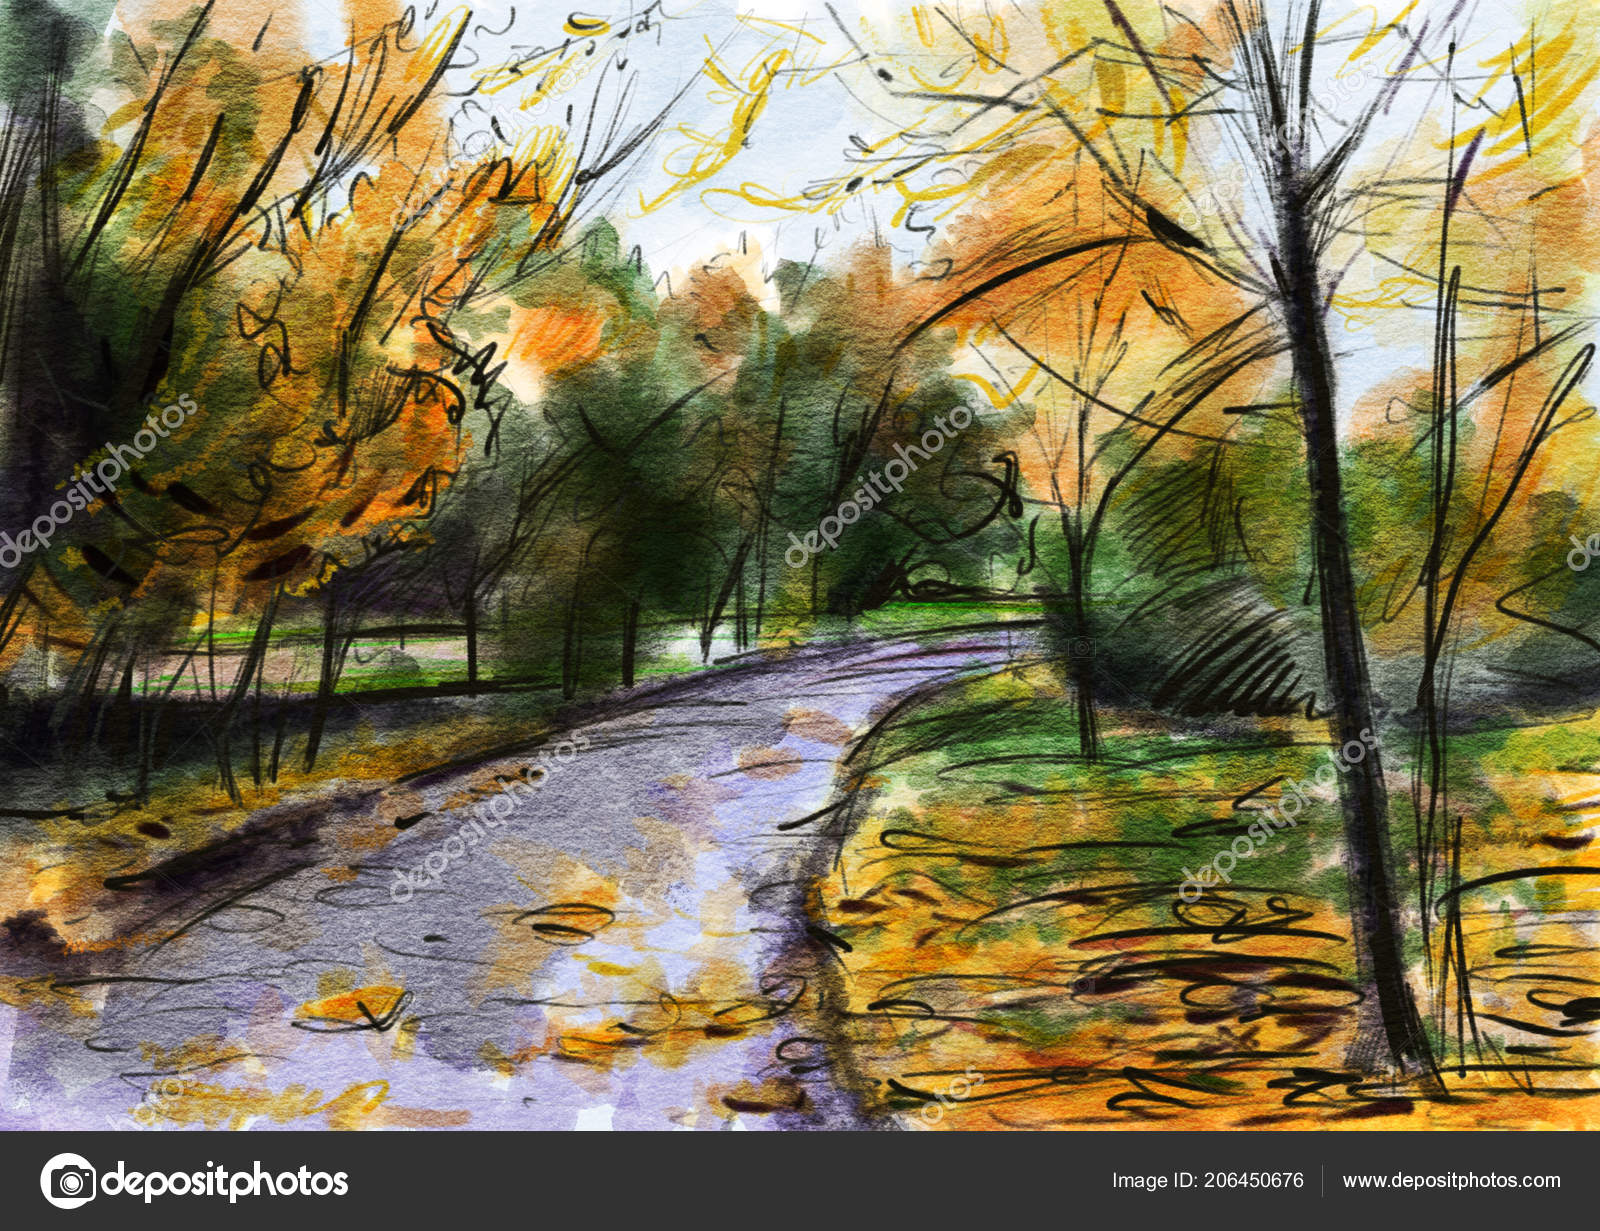 Autumn Landscape Drawing Autumn Landscape Drawing Watercolor Color Pencil Hand Drawn Illustration Stock Photo C Tiff20 206450676